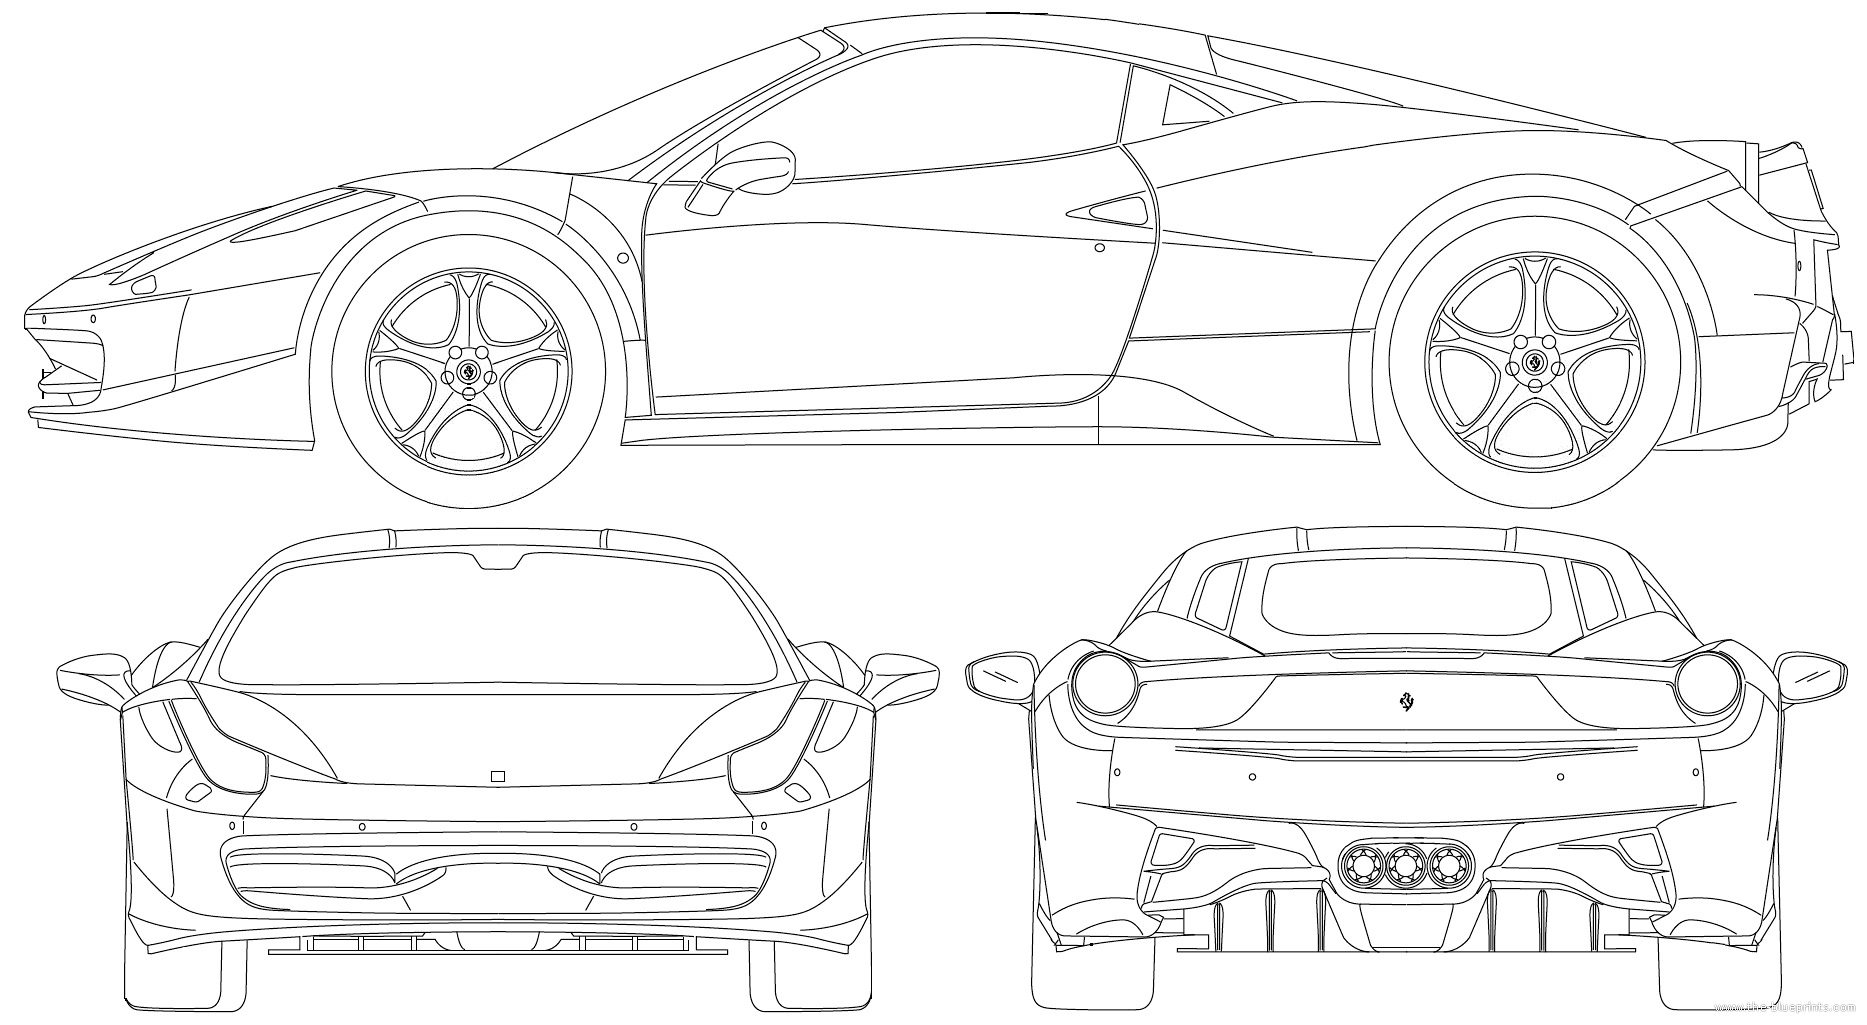 Index together with RepairGuideContent as well Generic car cutaway additionally Ferrari 458 italia  2013 further 94. on car diagram exterior